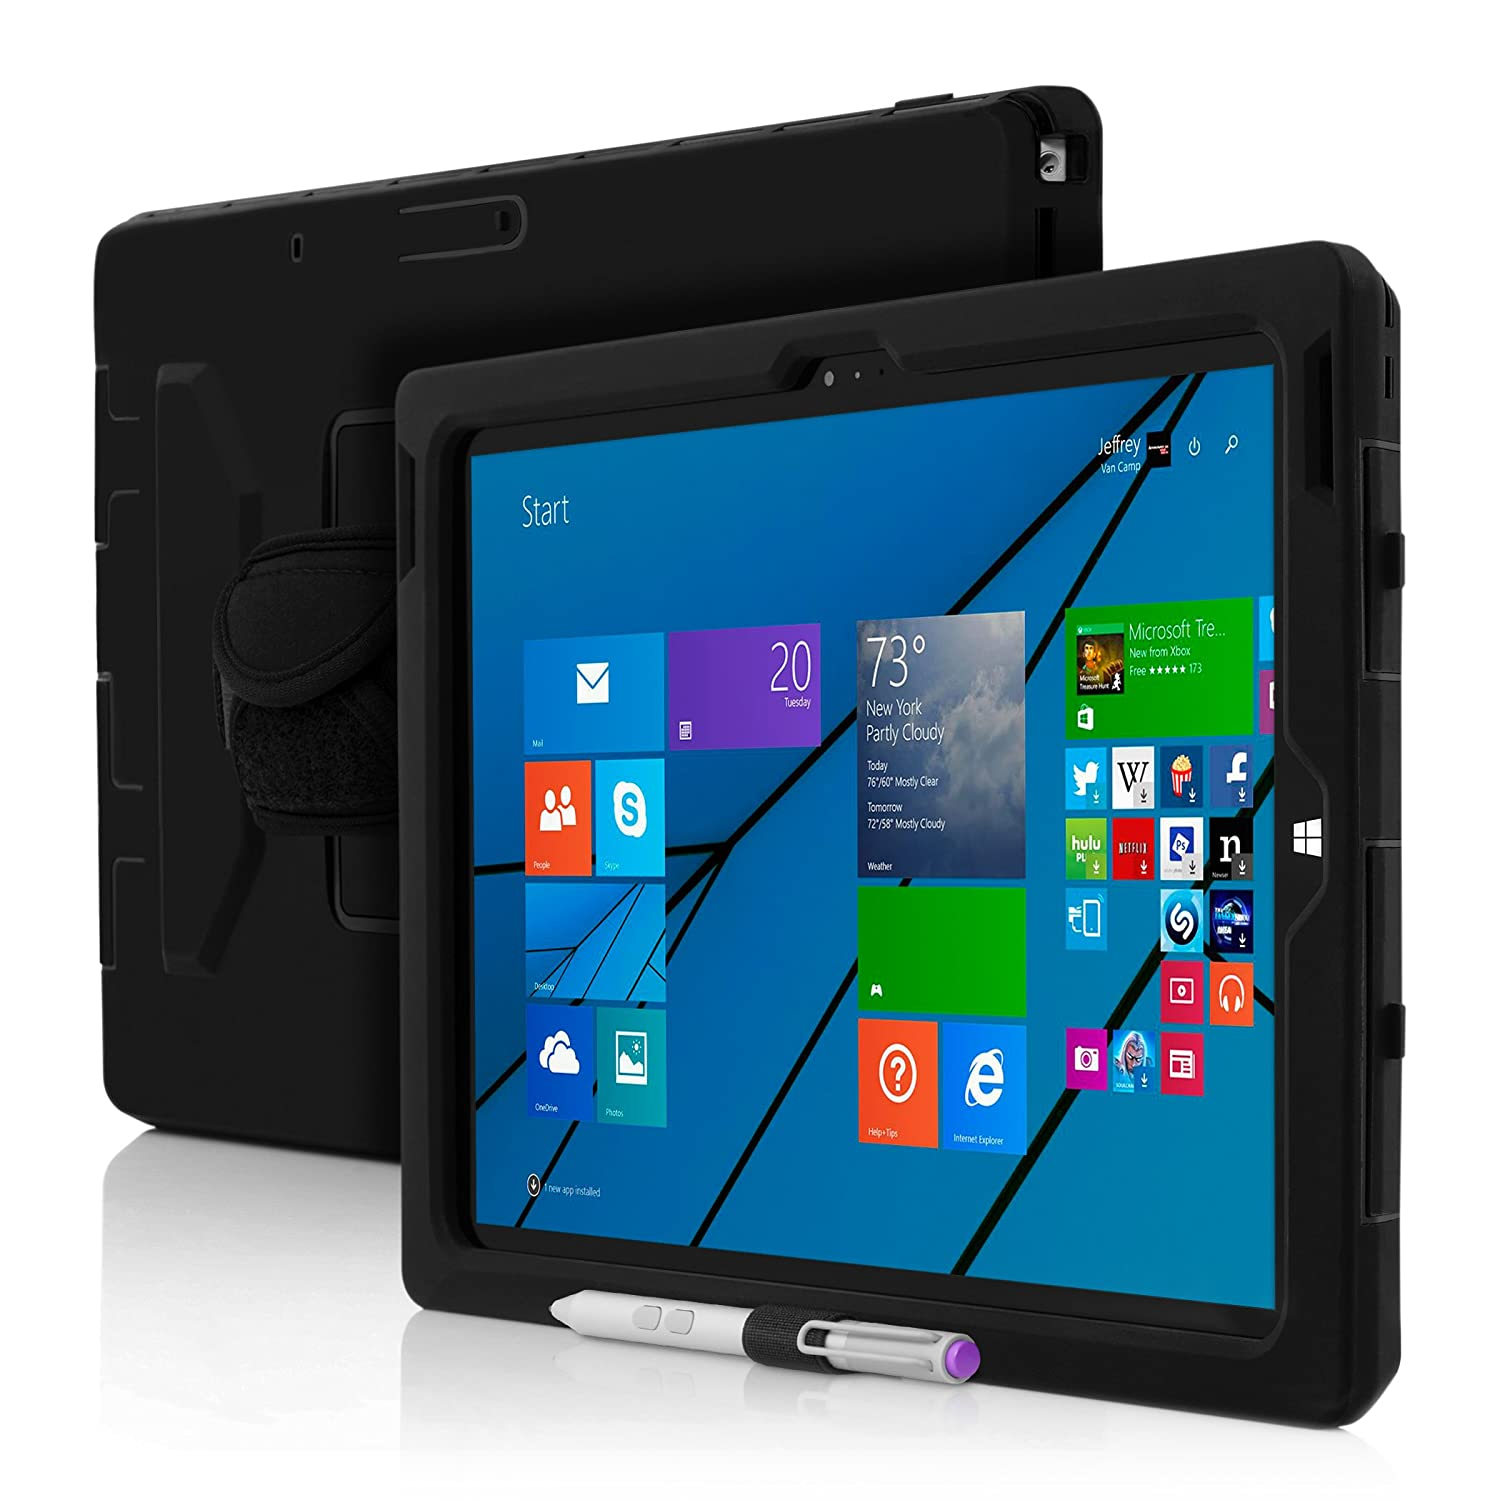 rug microsoft rugged uag pr urban tablet launches s armor for case gear new surface the designed cases pro